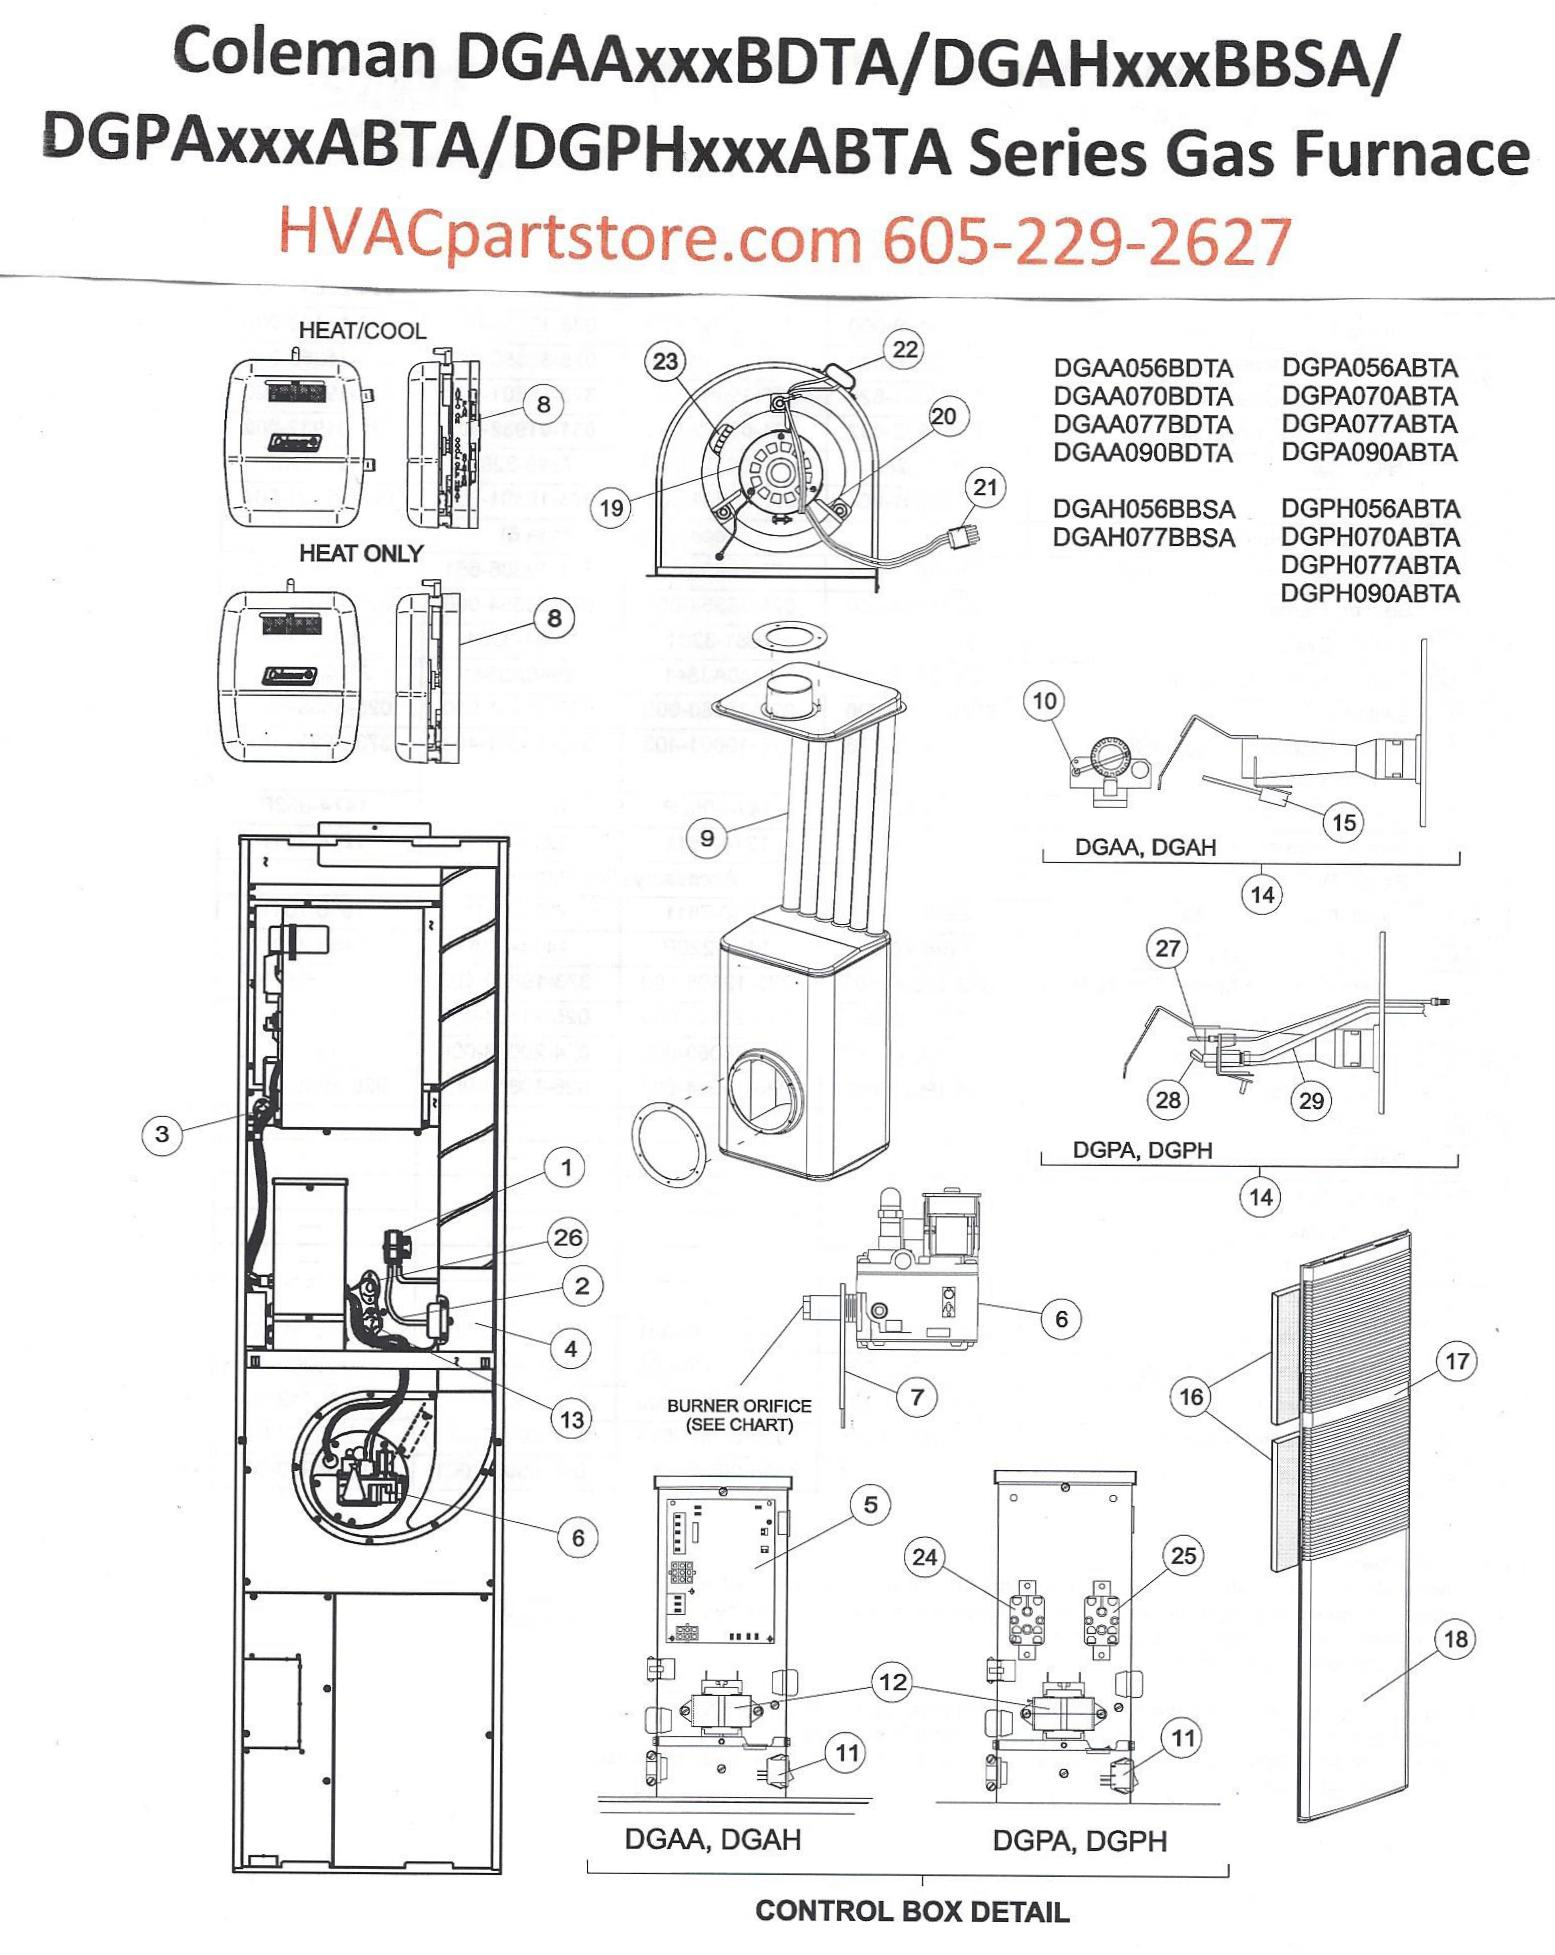 dgaa077bdta coleman gas furnace parts hvacpartstore electric furnace wiring diagram click here to view a manual for the dgaa077bdta which includes wiring diagrams